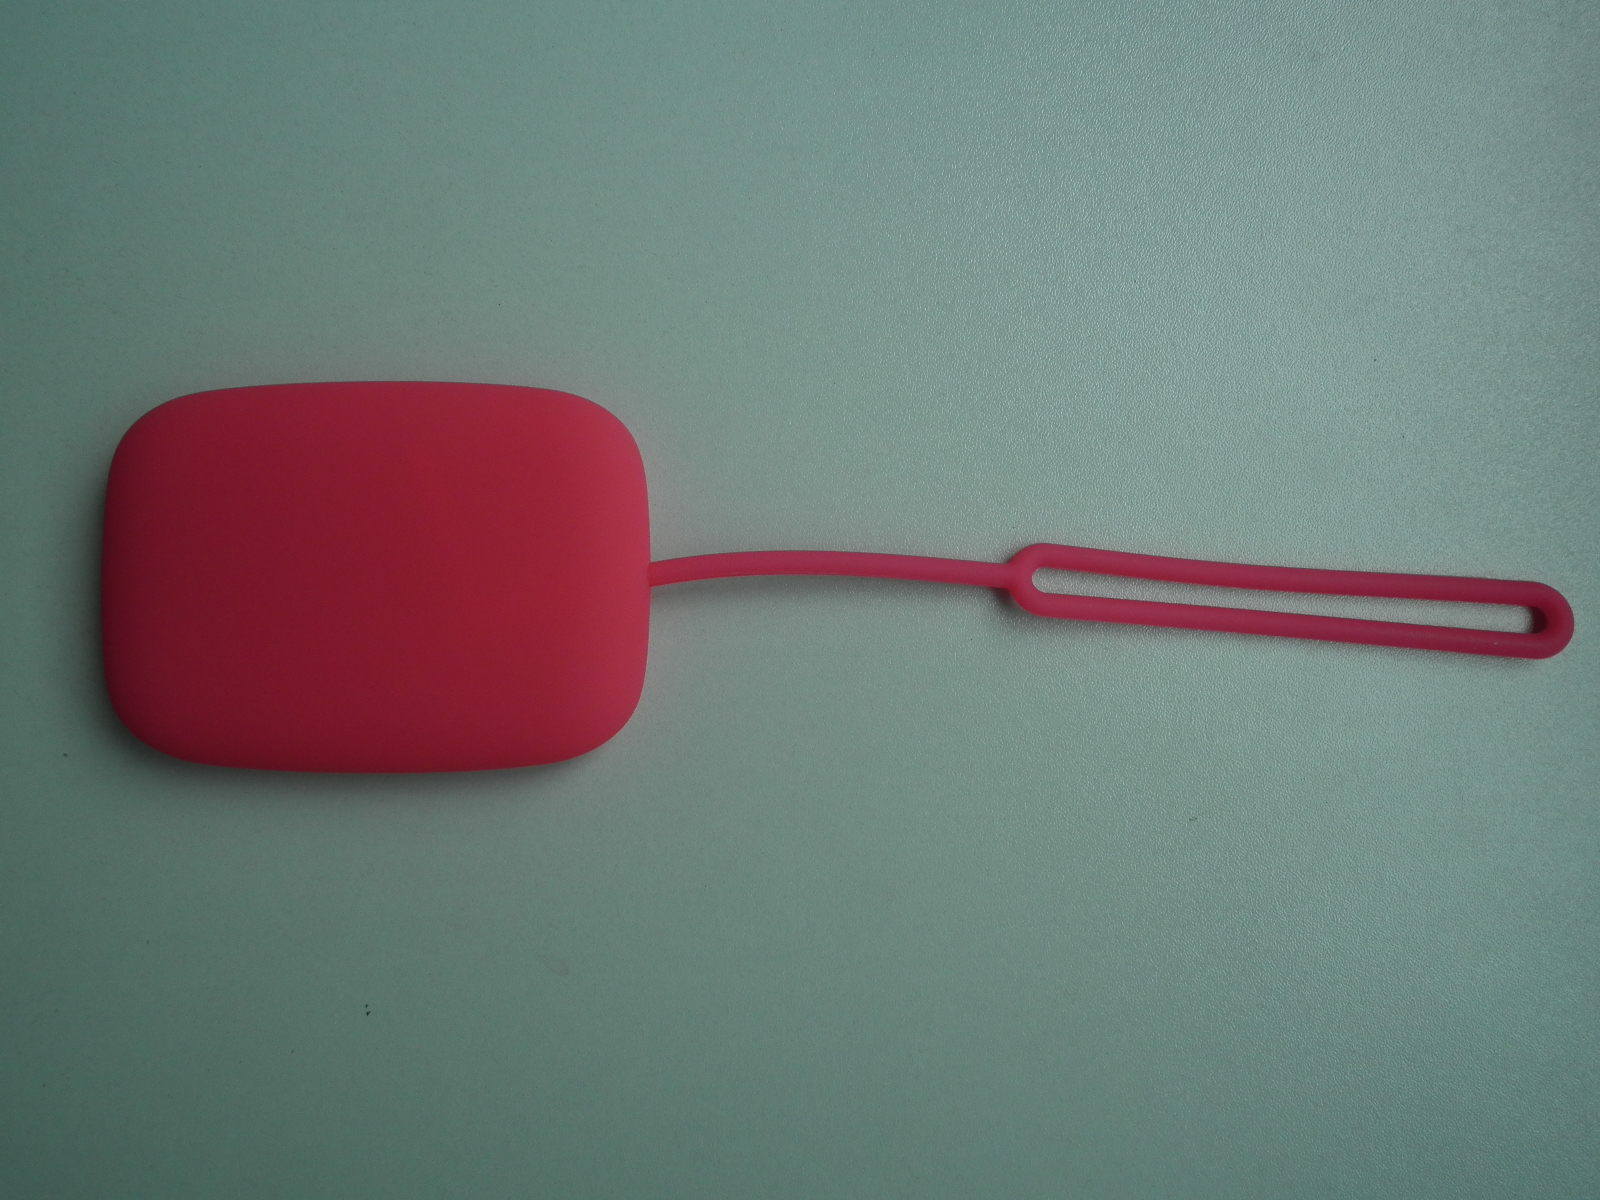 http://www.refinehksilicone.cn/data/images/product/20180418101646_269.JPG